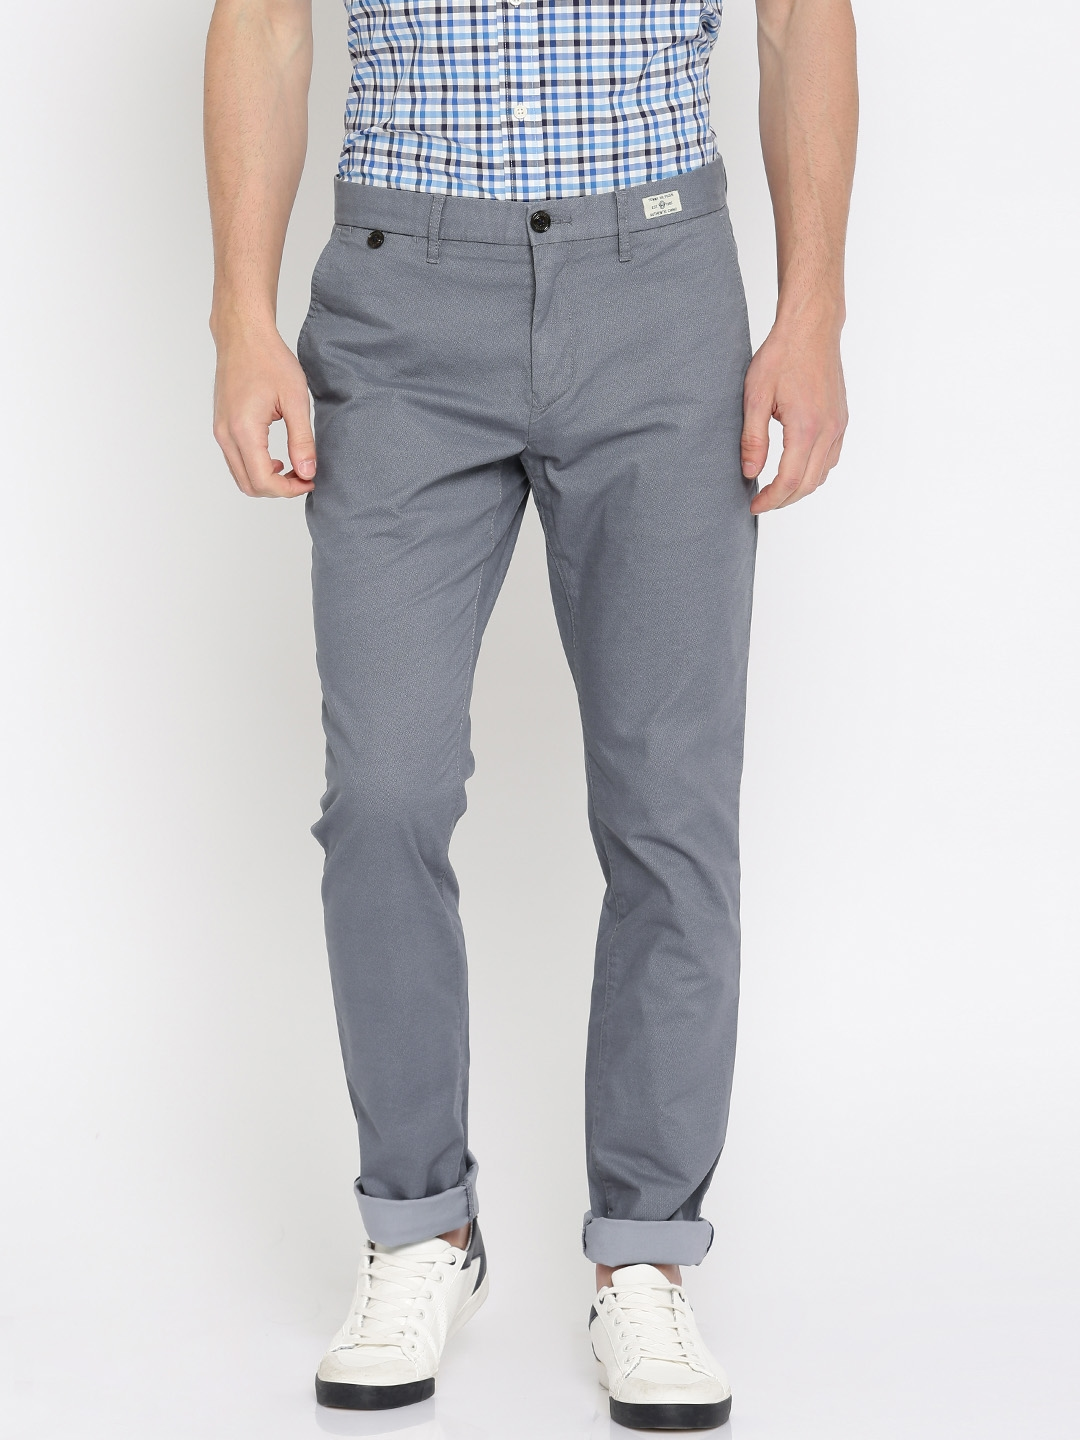 579ef14b Buy Tommy Hilfiger Men Grey Slim Fit Printed Chinos - Trousers for ...